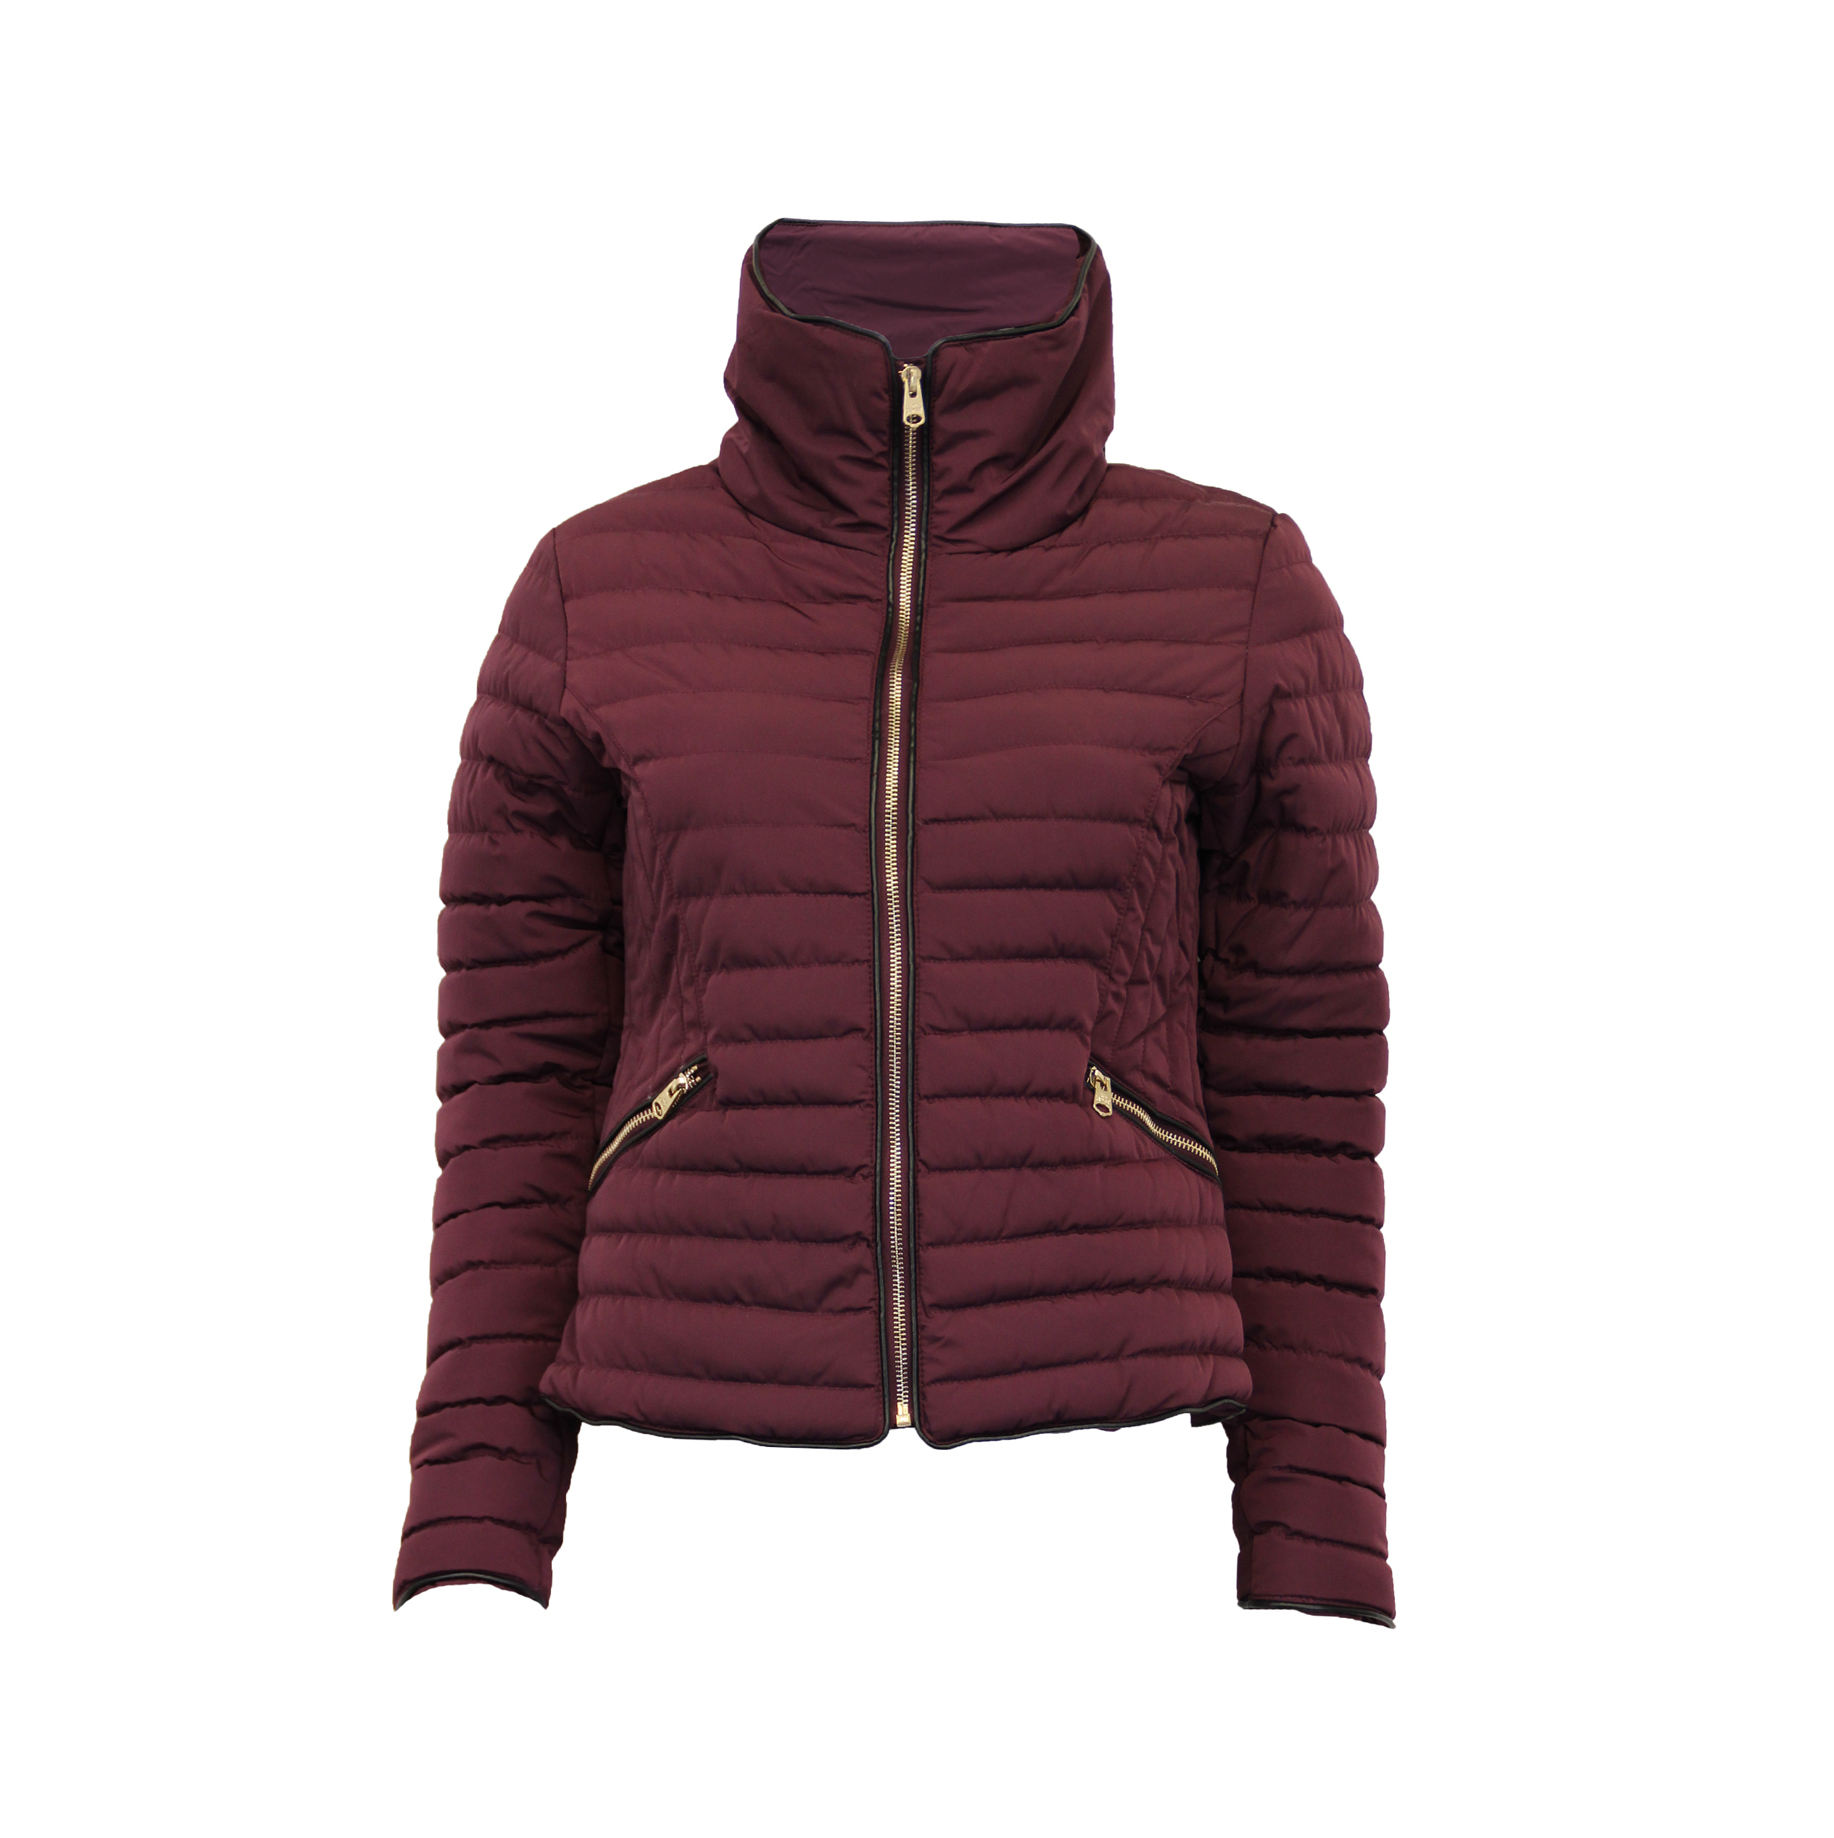 Comfortable best style breathable padded jacket